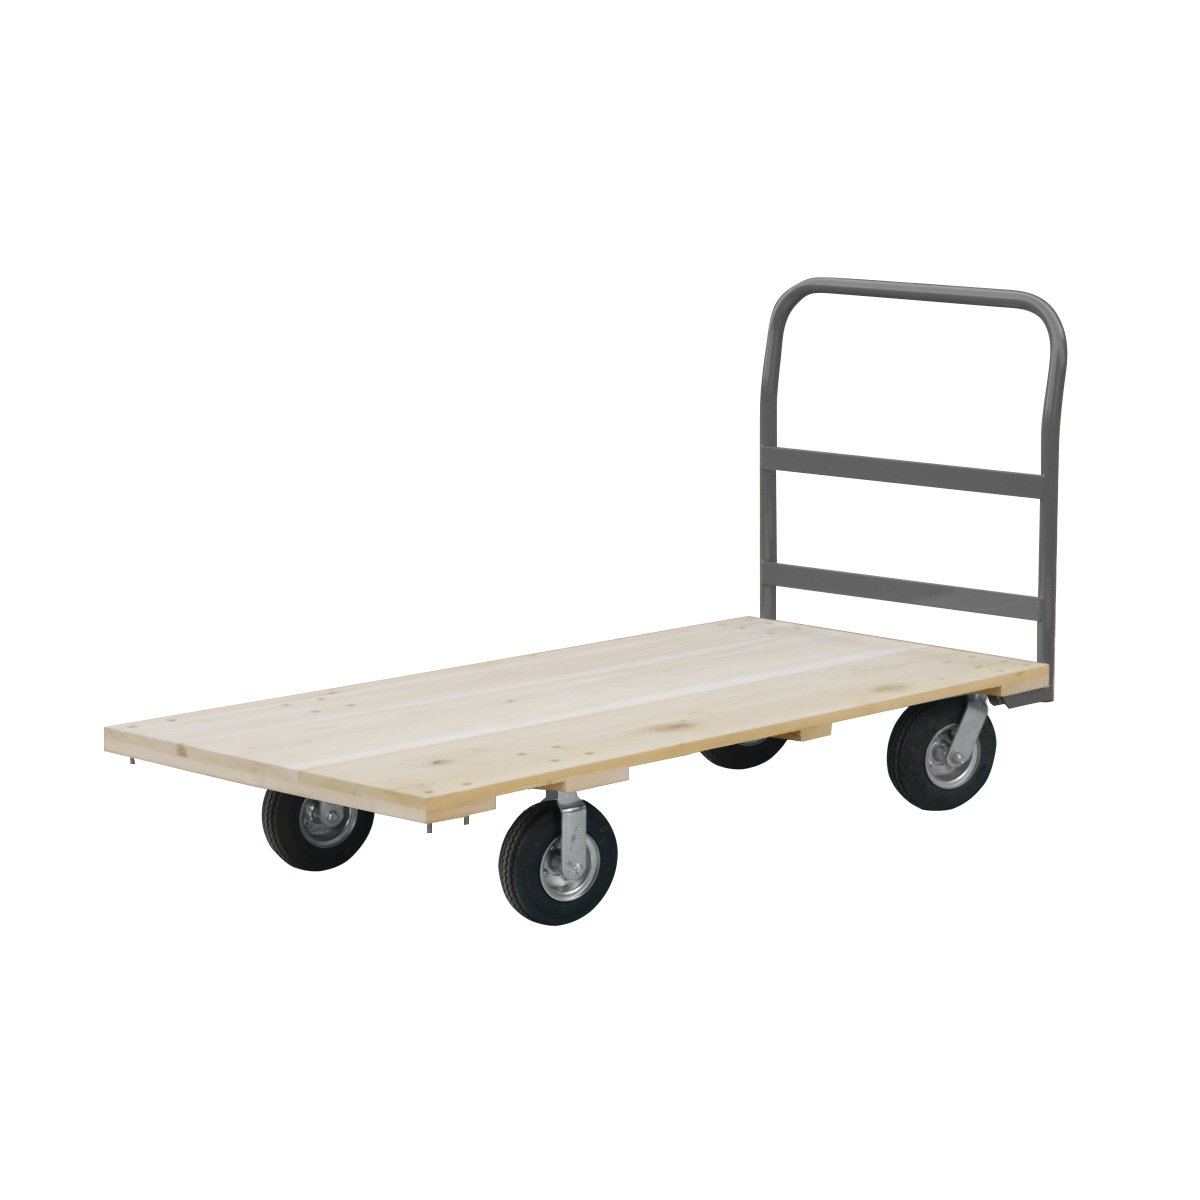 Akro-Mils RPT30605K5N8GY 30-Inch  by 60-Inch  Industrial Grade Hard Wood Platform Truck with Crossbar Handle and 8-Inch  Full-Pneumatic Caster with  1000-Pound capacity